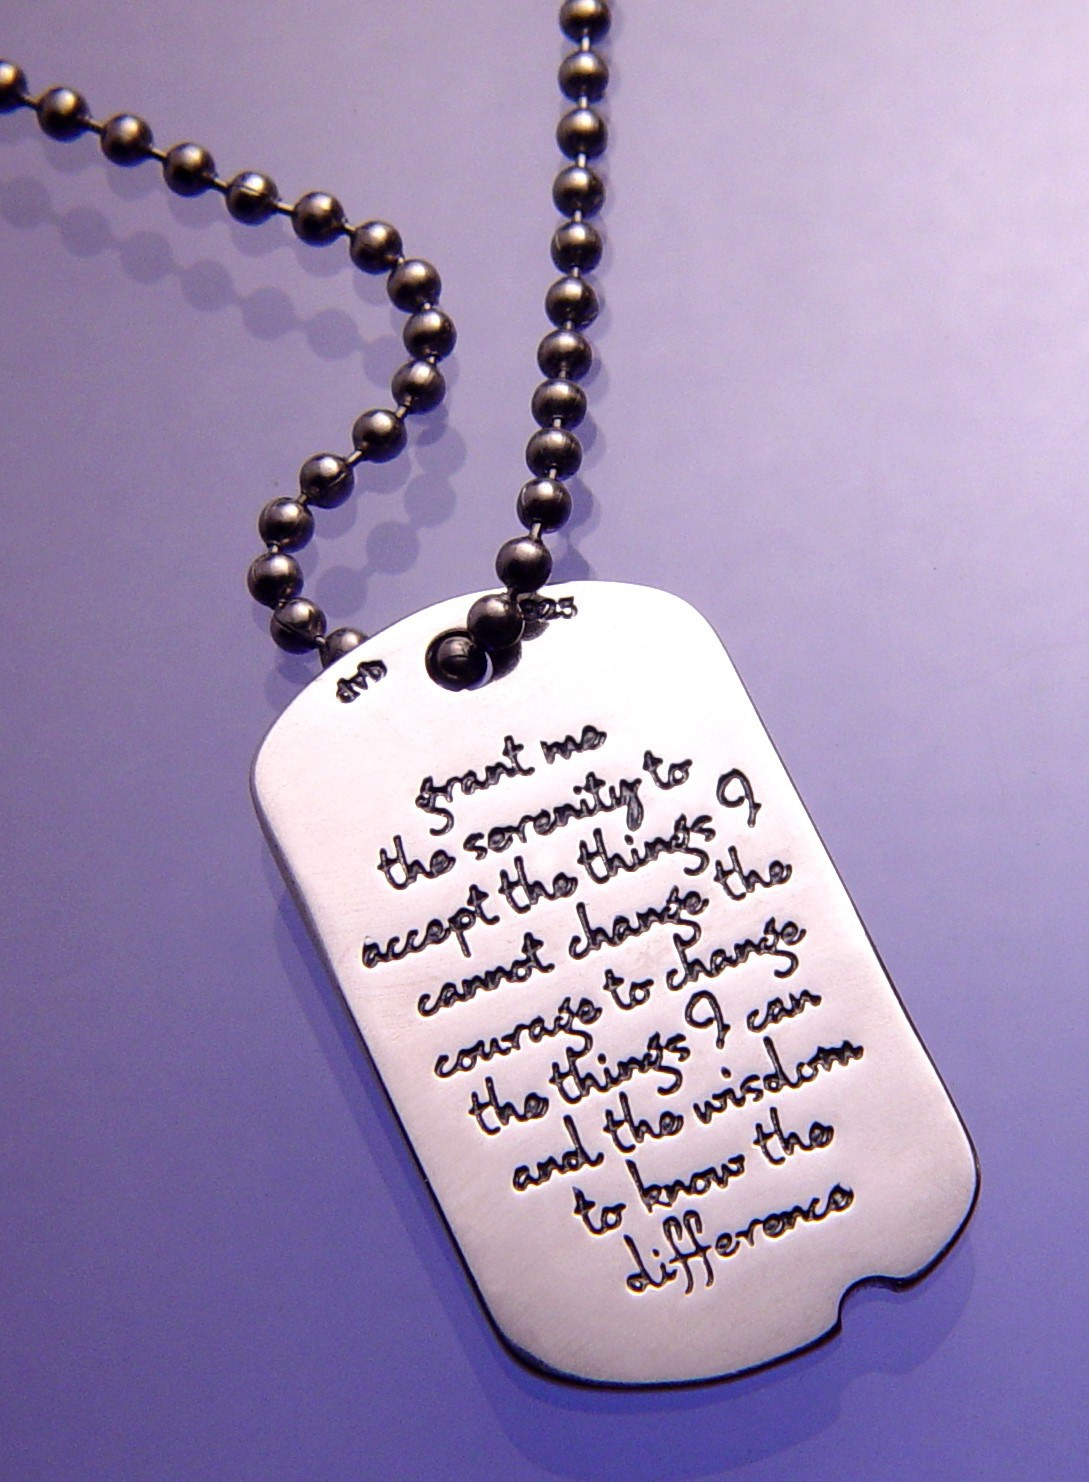 Serenity prayer dog tag serenity prayer pendant my 12 step store the shape of this serenity prayer dog tag is a scaled down reproduction of the shape introduced by us army in 1940 mozeypictures Gallery